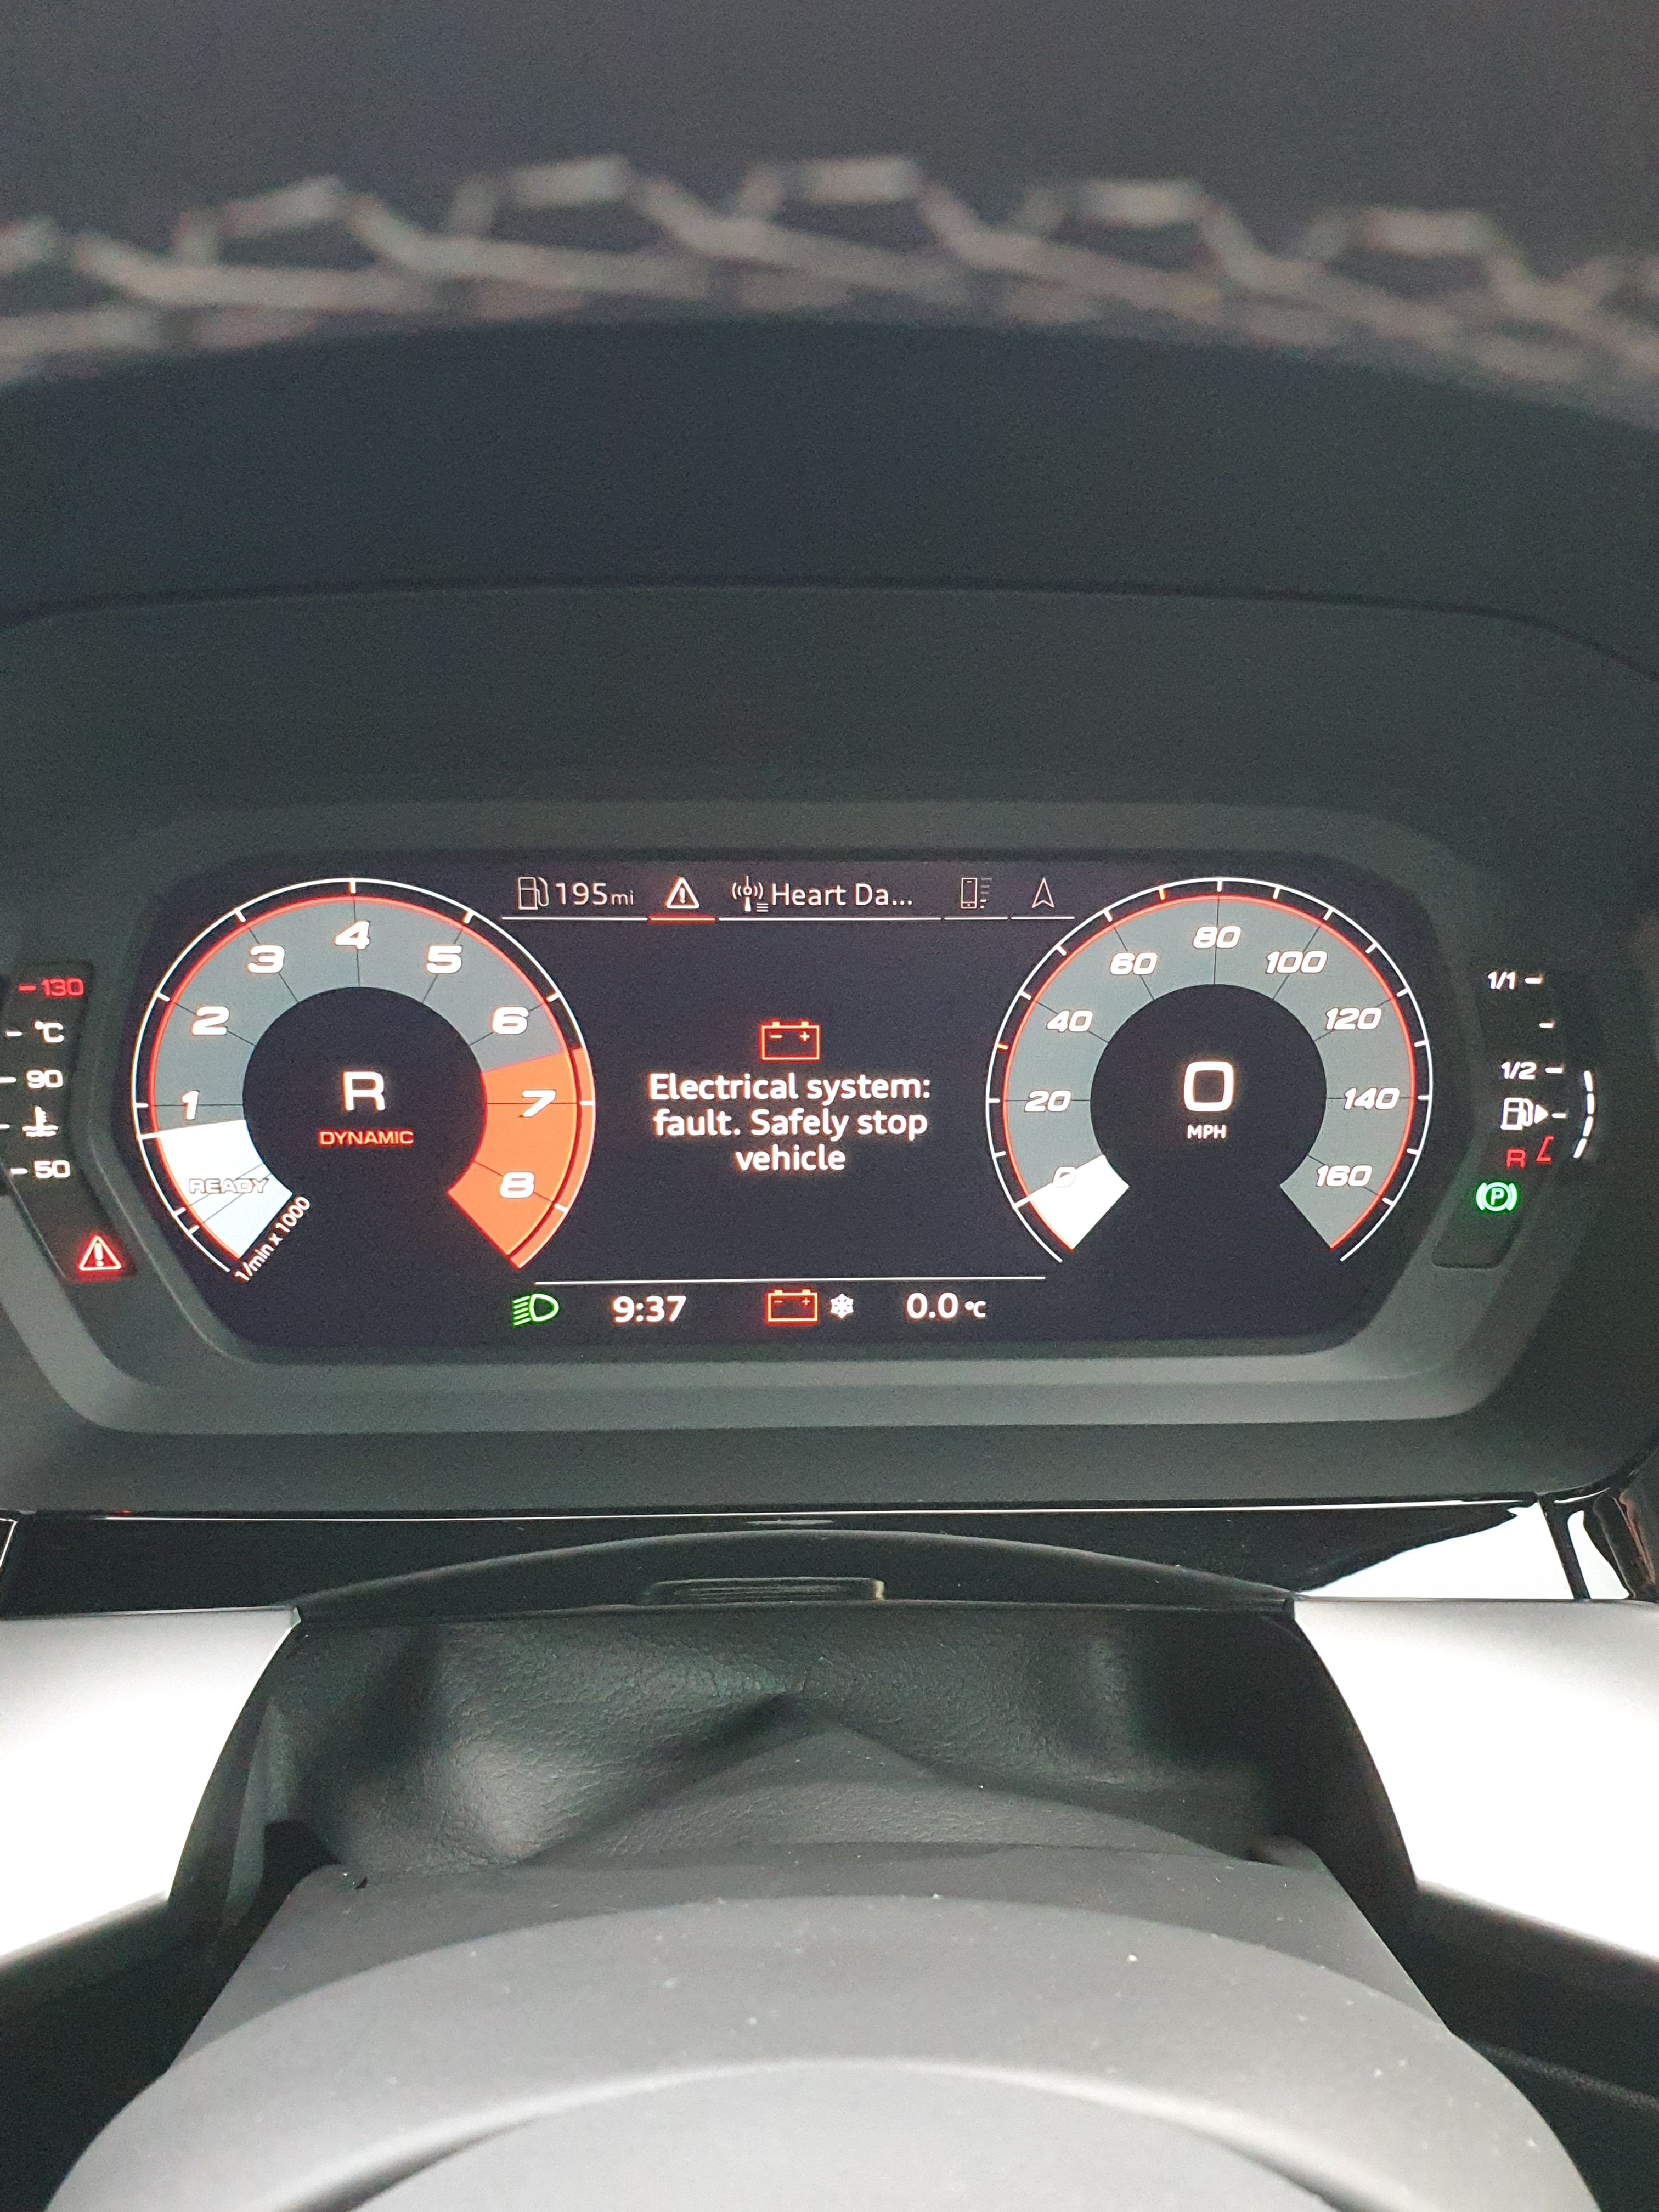 A3 8Y - Electrical system fault: Stop Vehicle | Audi-Sport.net